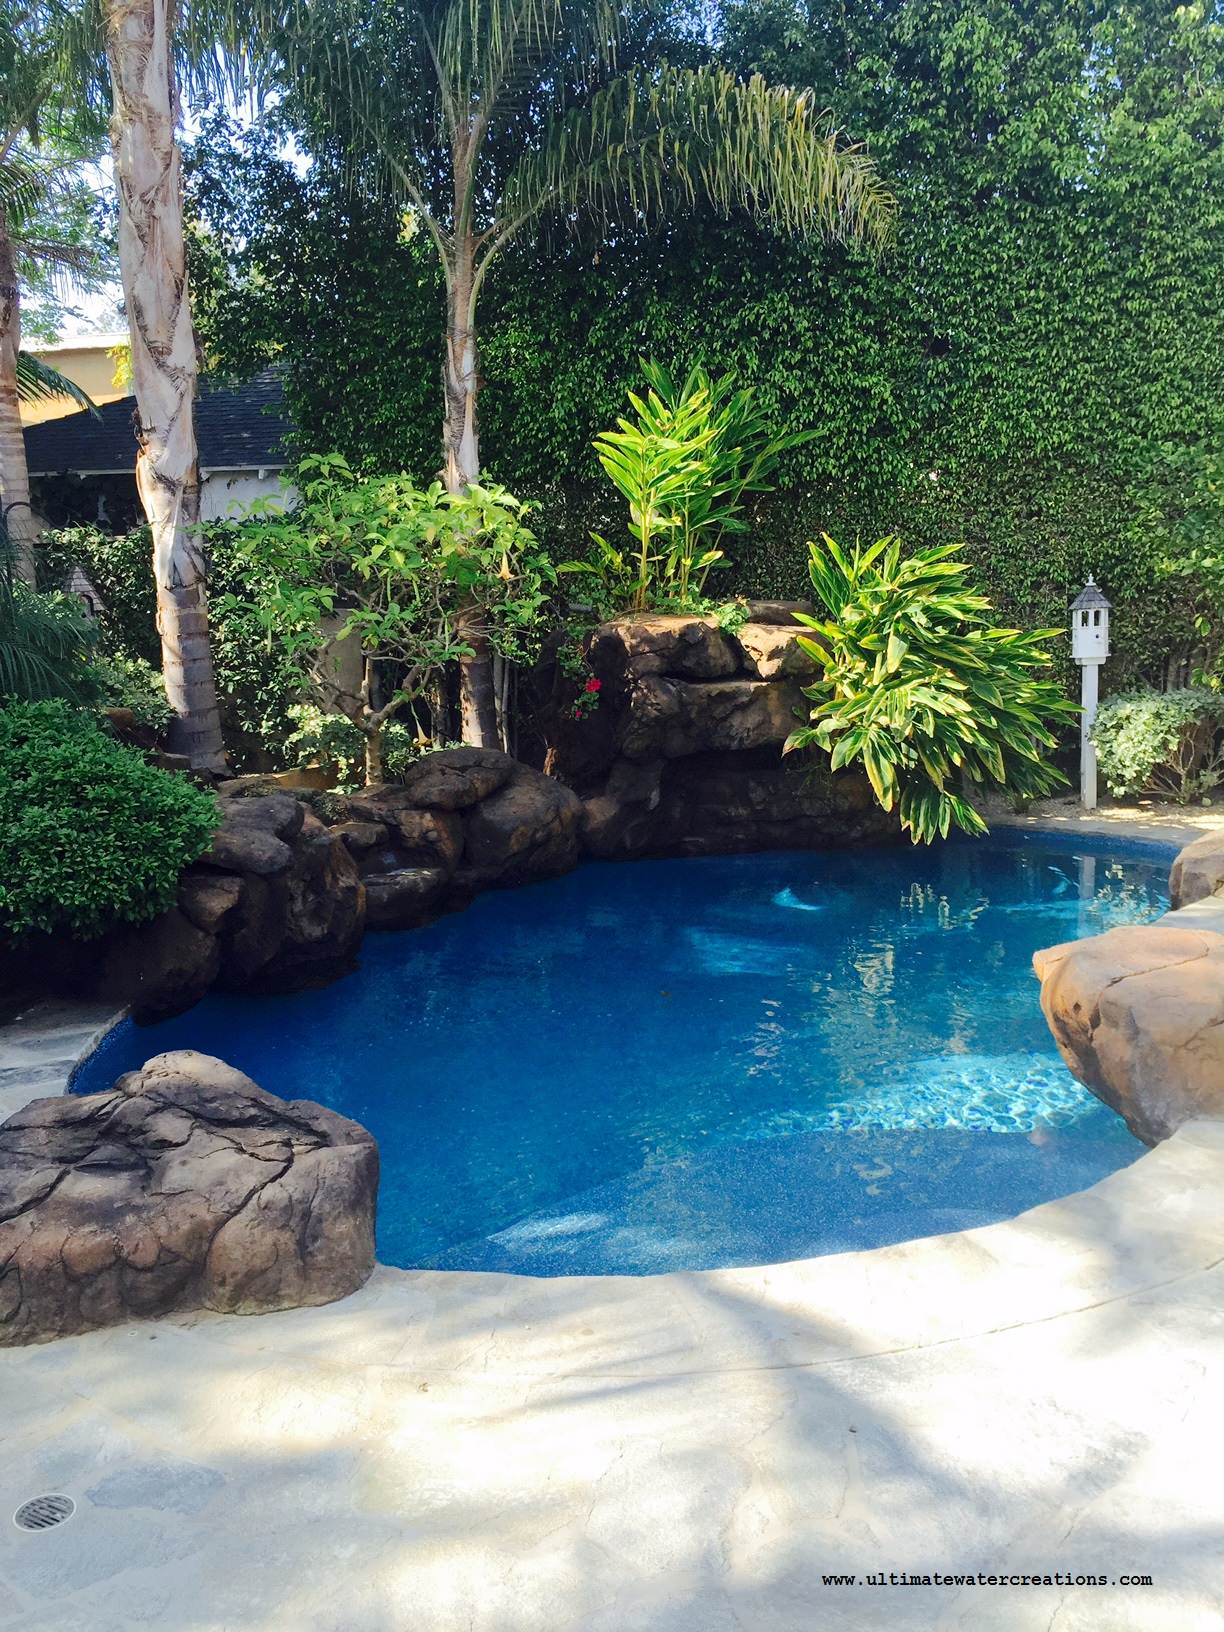 Brentwood Naturalistic Pool & Spa with Waterfalss